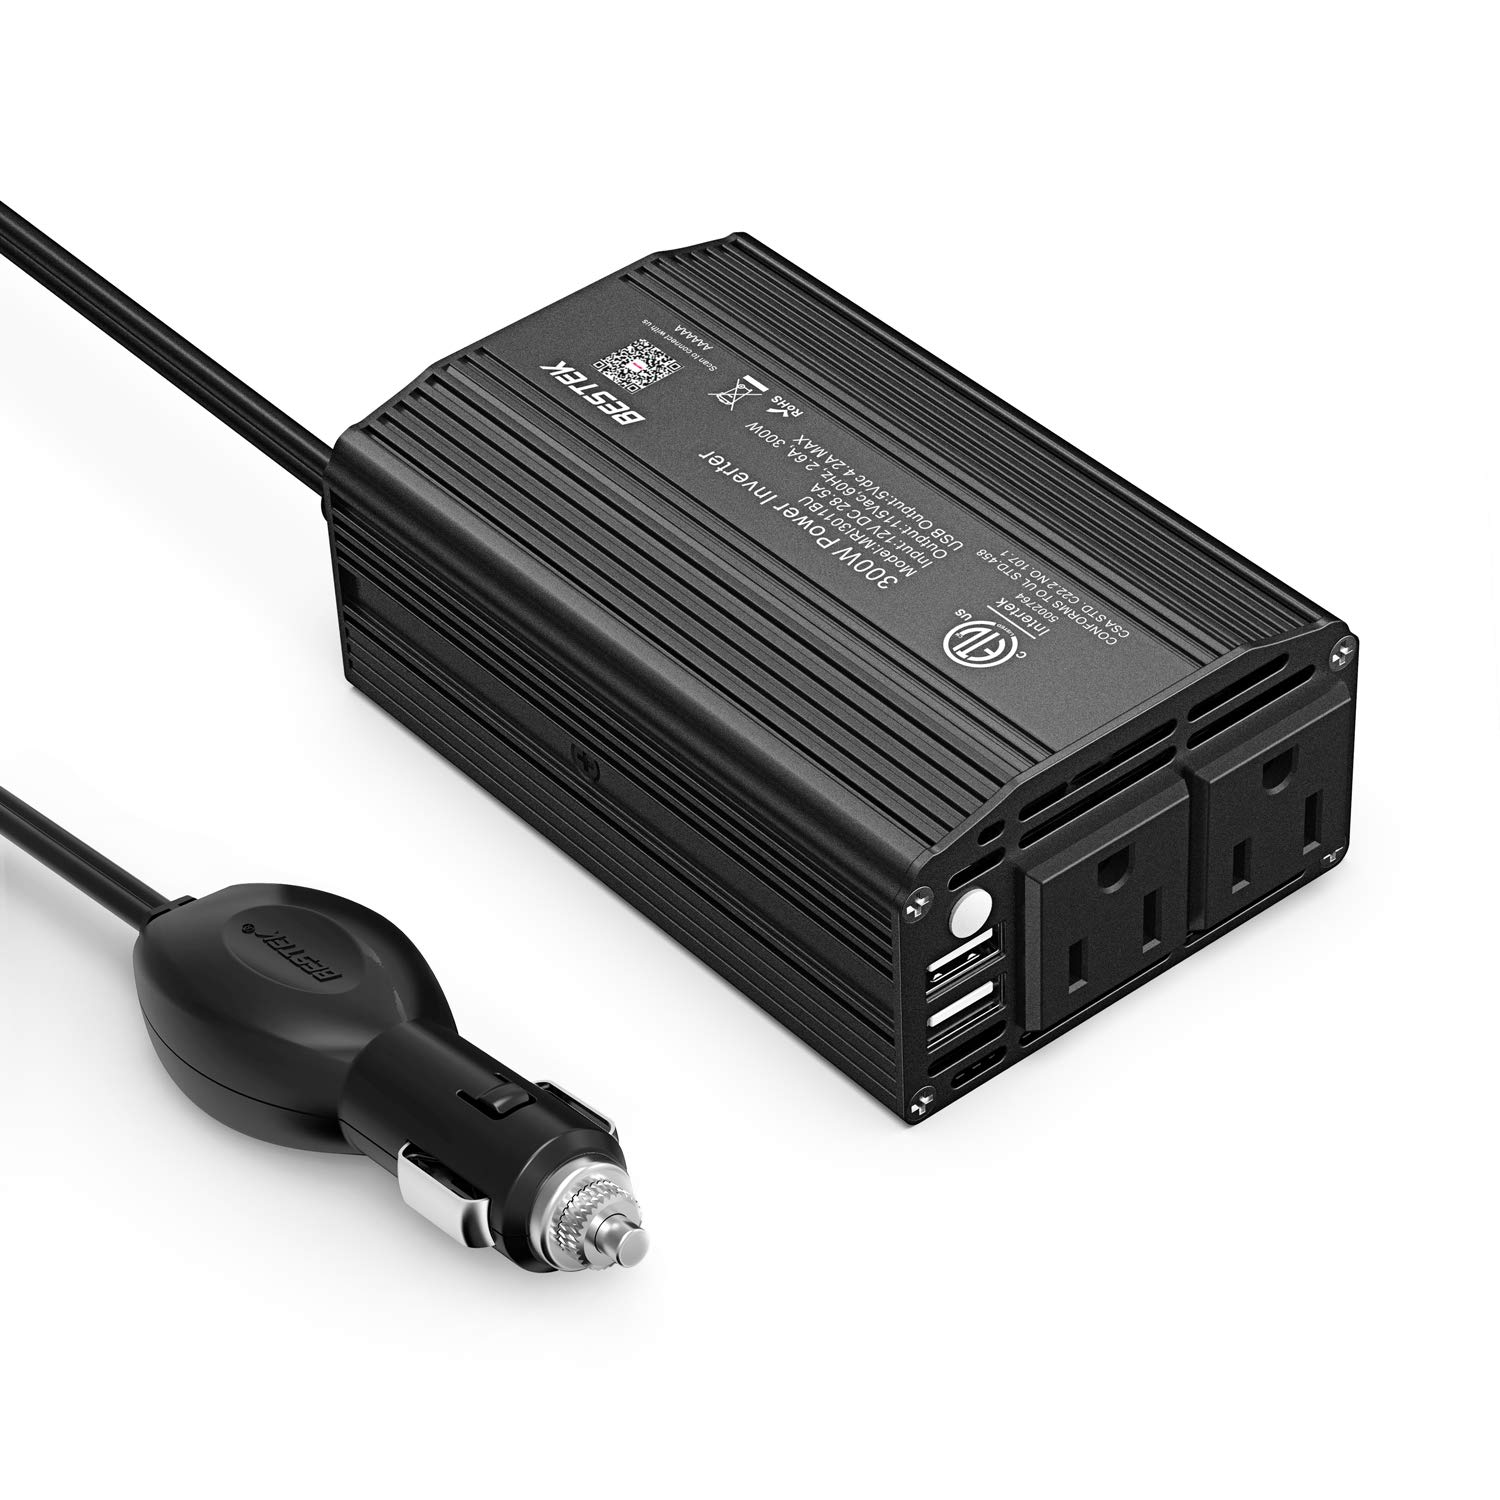 BESTEK 300W Power Inverter DC 12V to 110V AC Car Inverter with 4.2A Dual USB Car Adapter